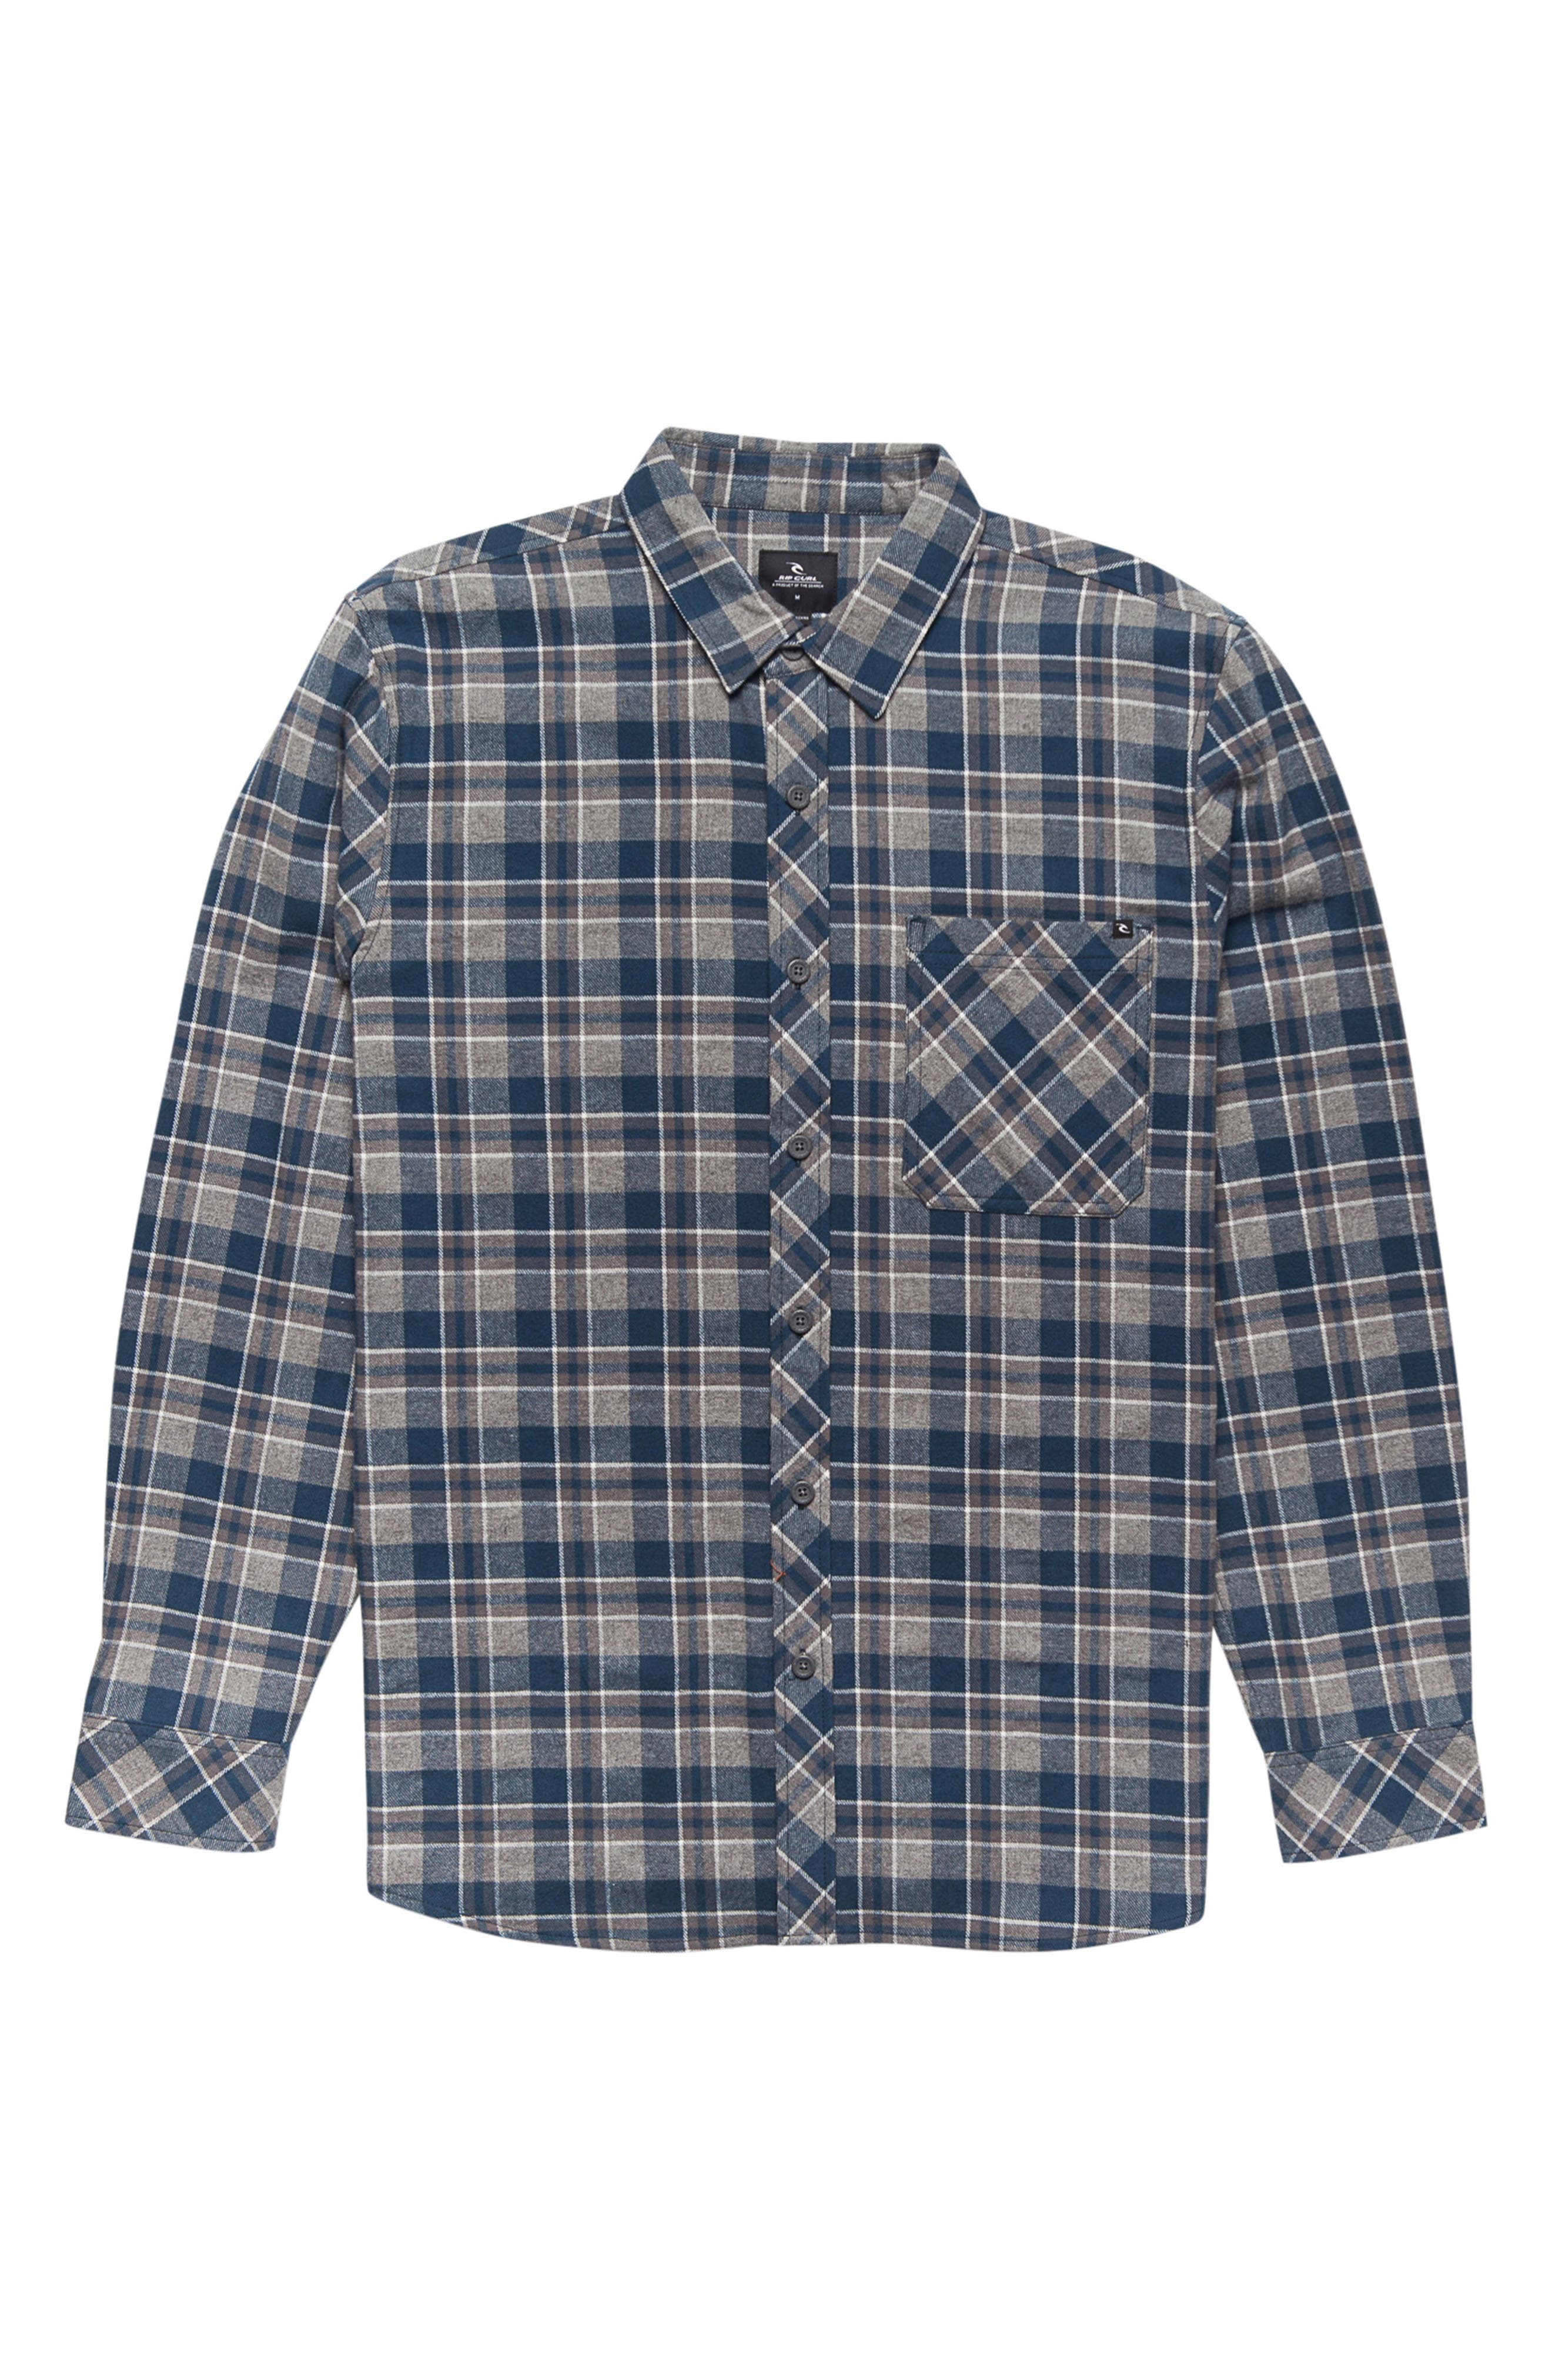 Mundo Plaid Flannel Shirt,                             Main thumbnail 1, color,                             410